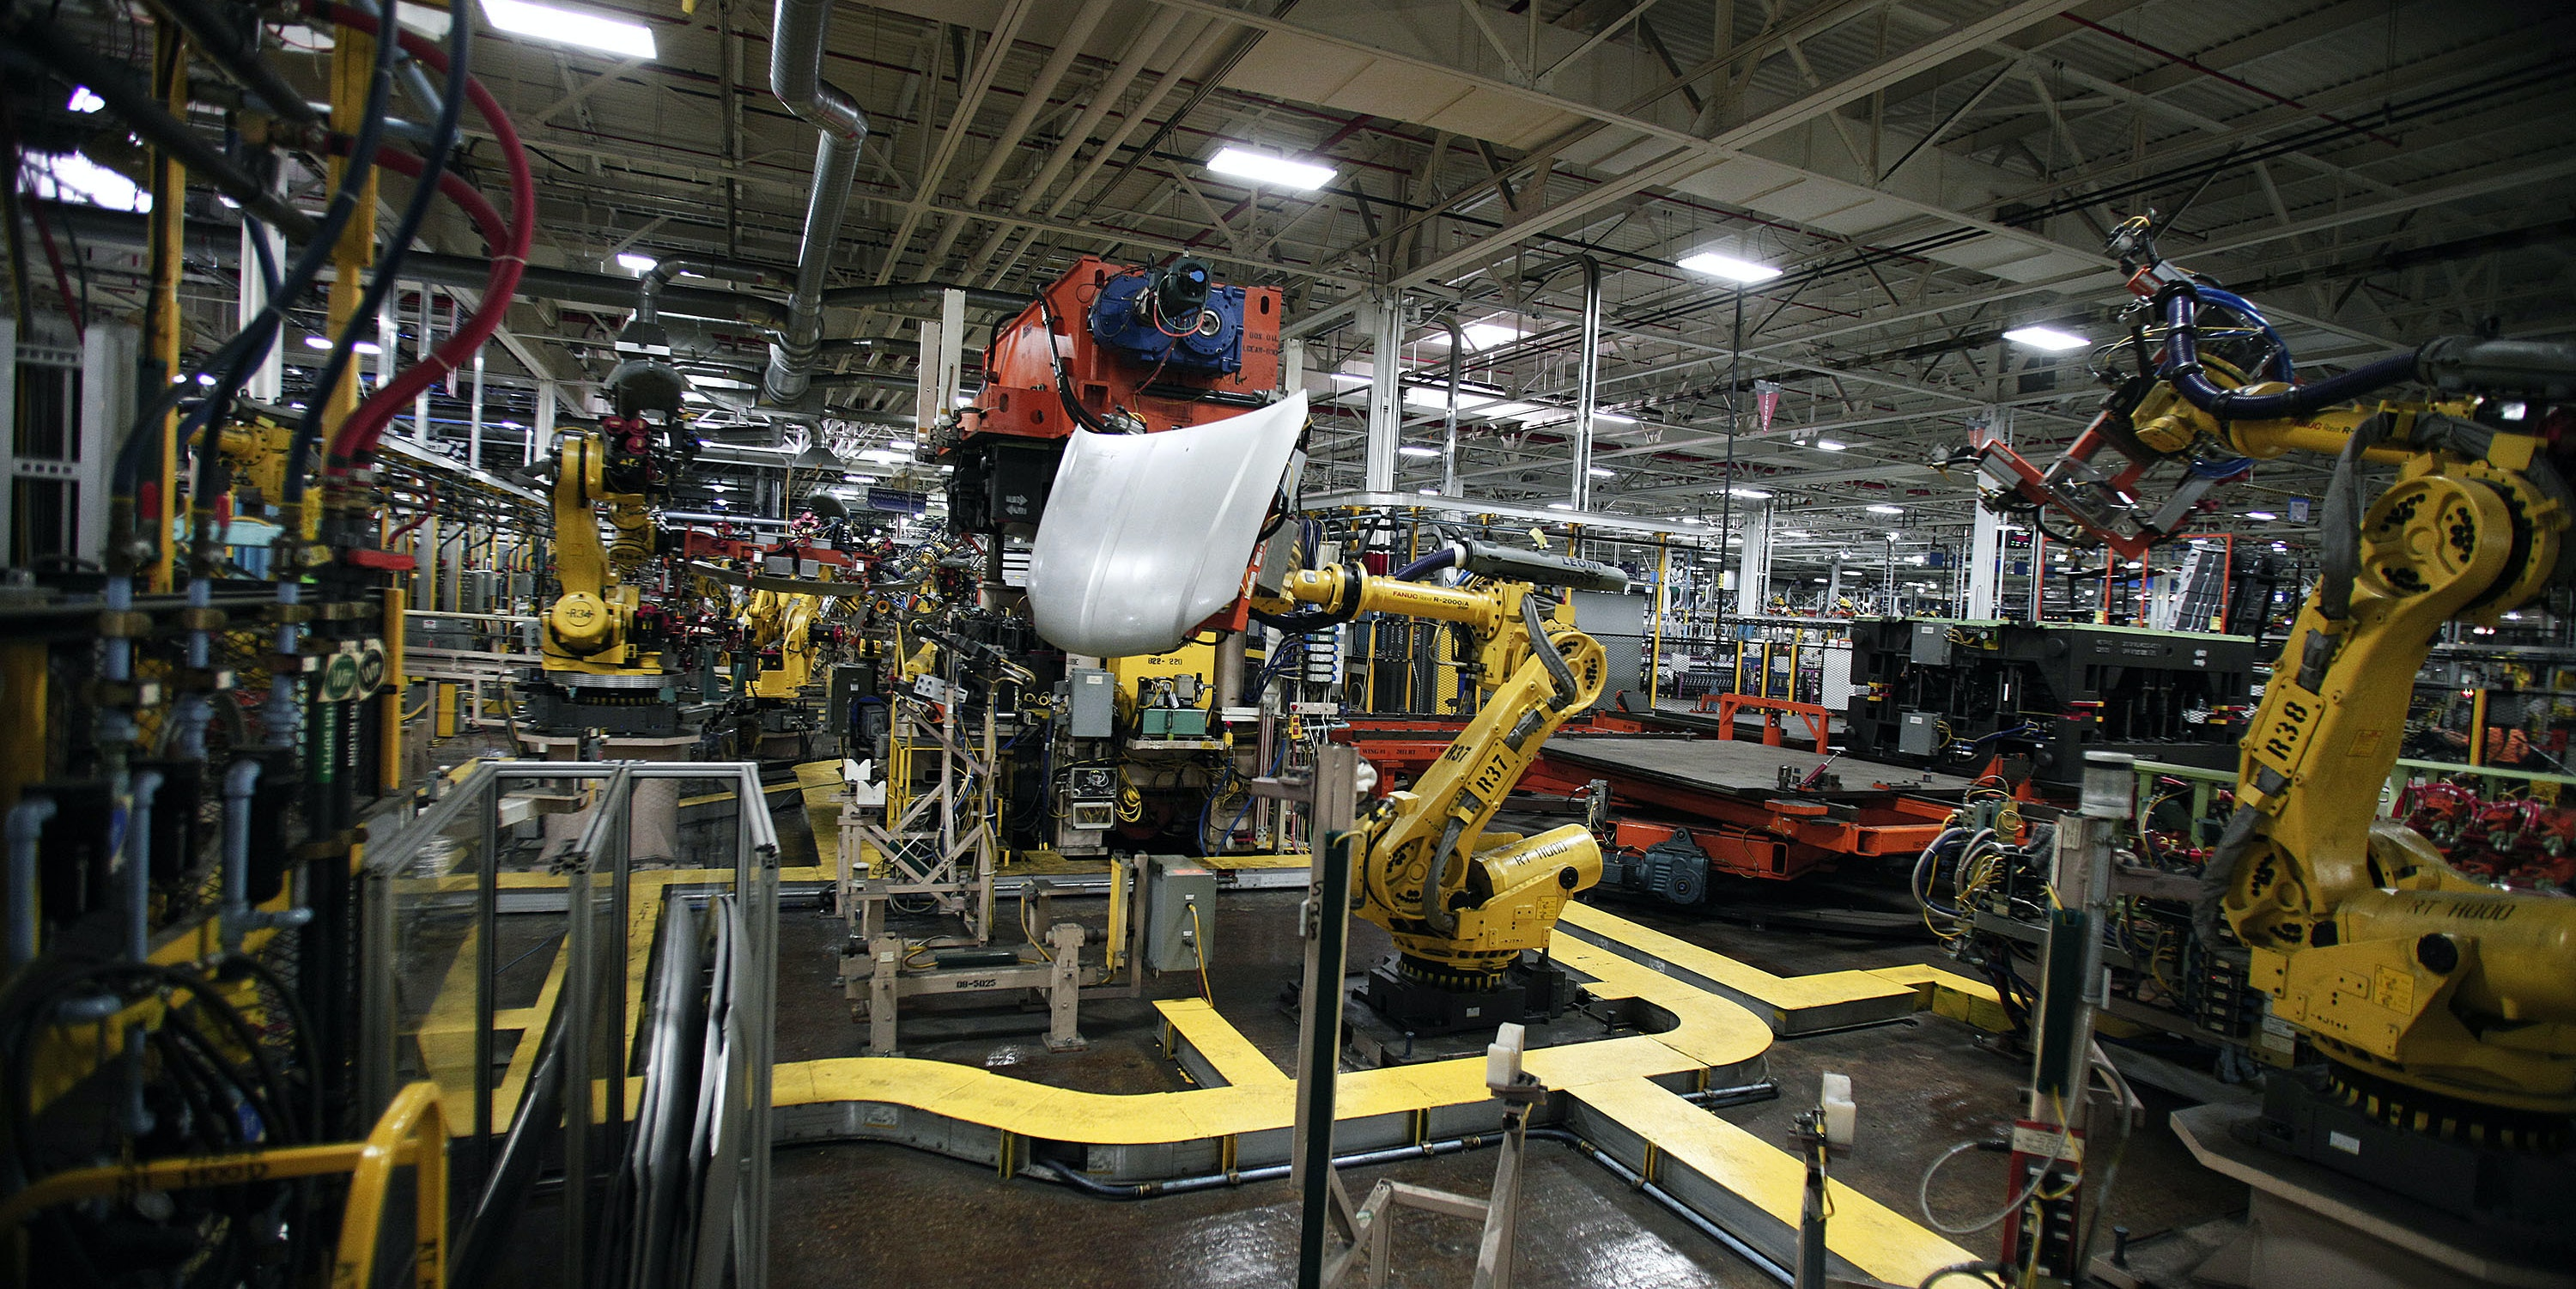 STERLING HEIGHTS, MI - AUGUST 26:  Robots handle parts for Fiat Chrysler Automobiles at the FCA Sterling Stamping Plant August 26, 2016 in Sterling Heights, Michigan. An event was held today at the plant to celebrate the start of production of three all-new stamping presses, whose installation began in July 2015 and cost $166 million. (Photo by Bill Pugliano/Getty Images)